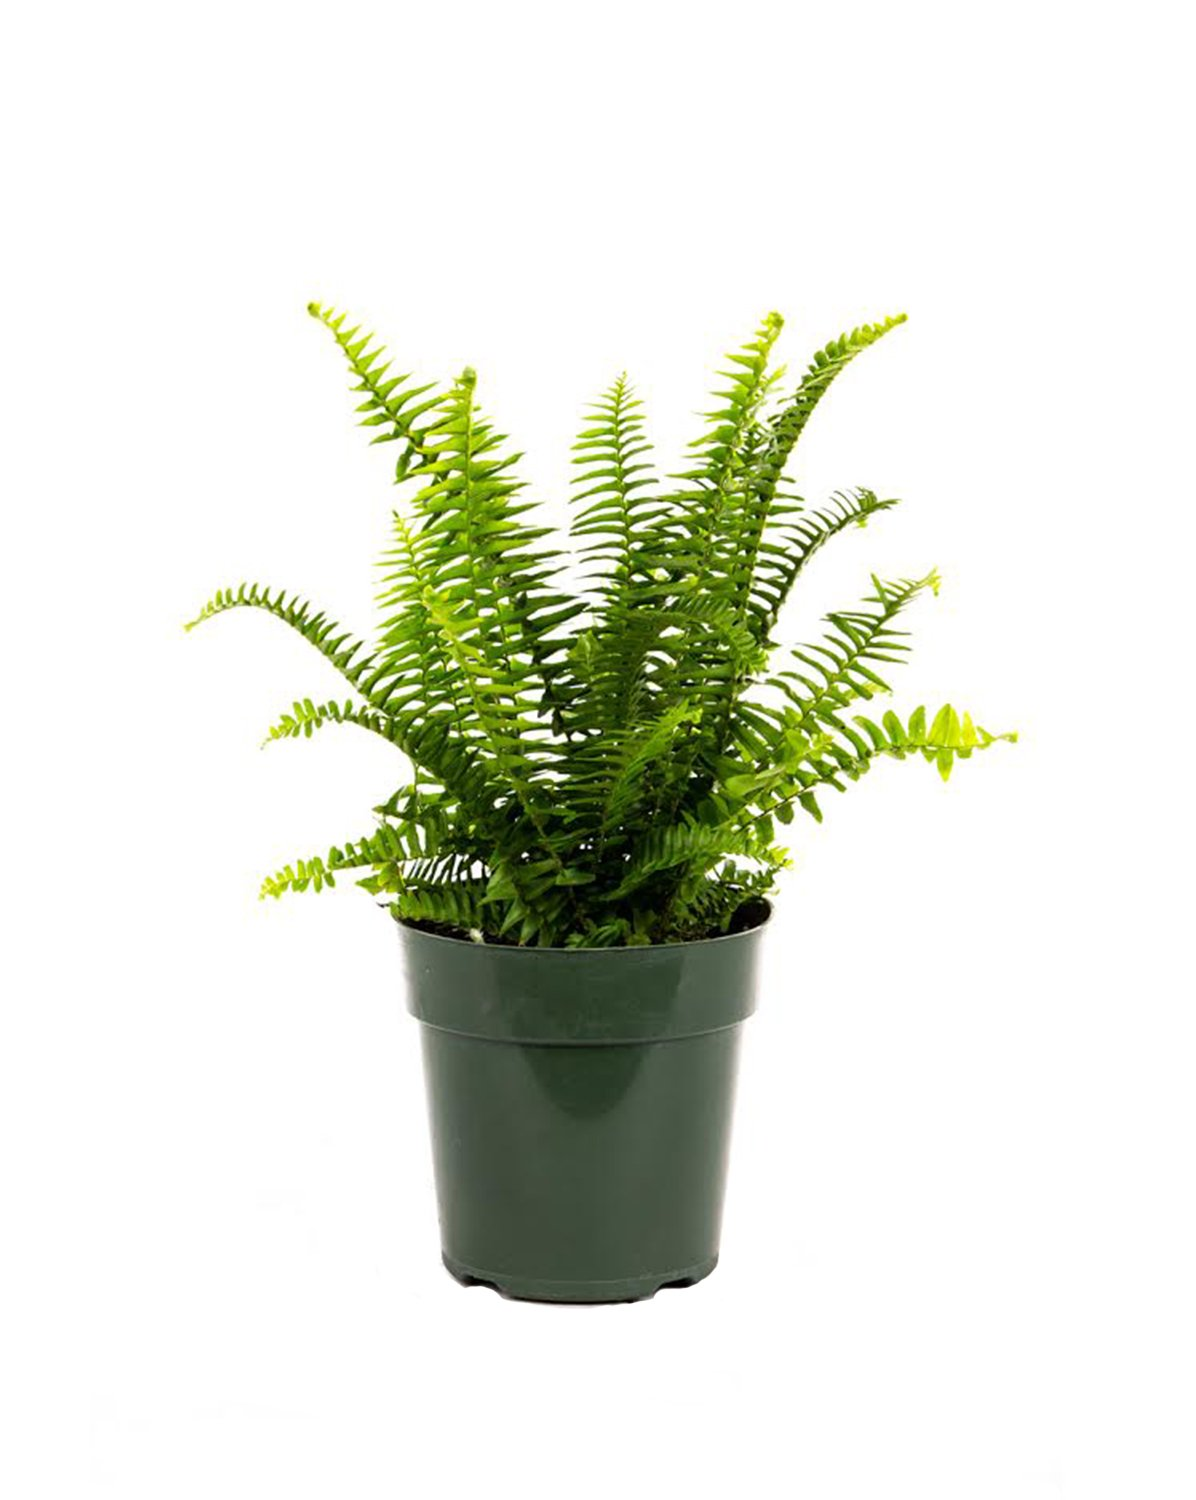 AMERICAN PLANT EXCHANGE Fern Kimberly Queen Live Plant, 6'' Pot, Indoor/Outdoor Air Purifier by AMERICAN PLANT EXCHANGE